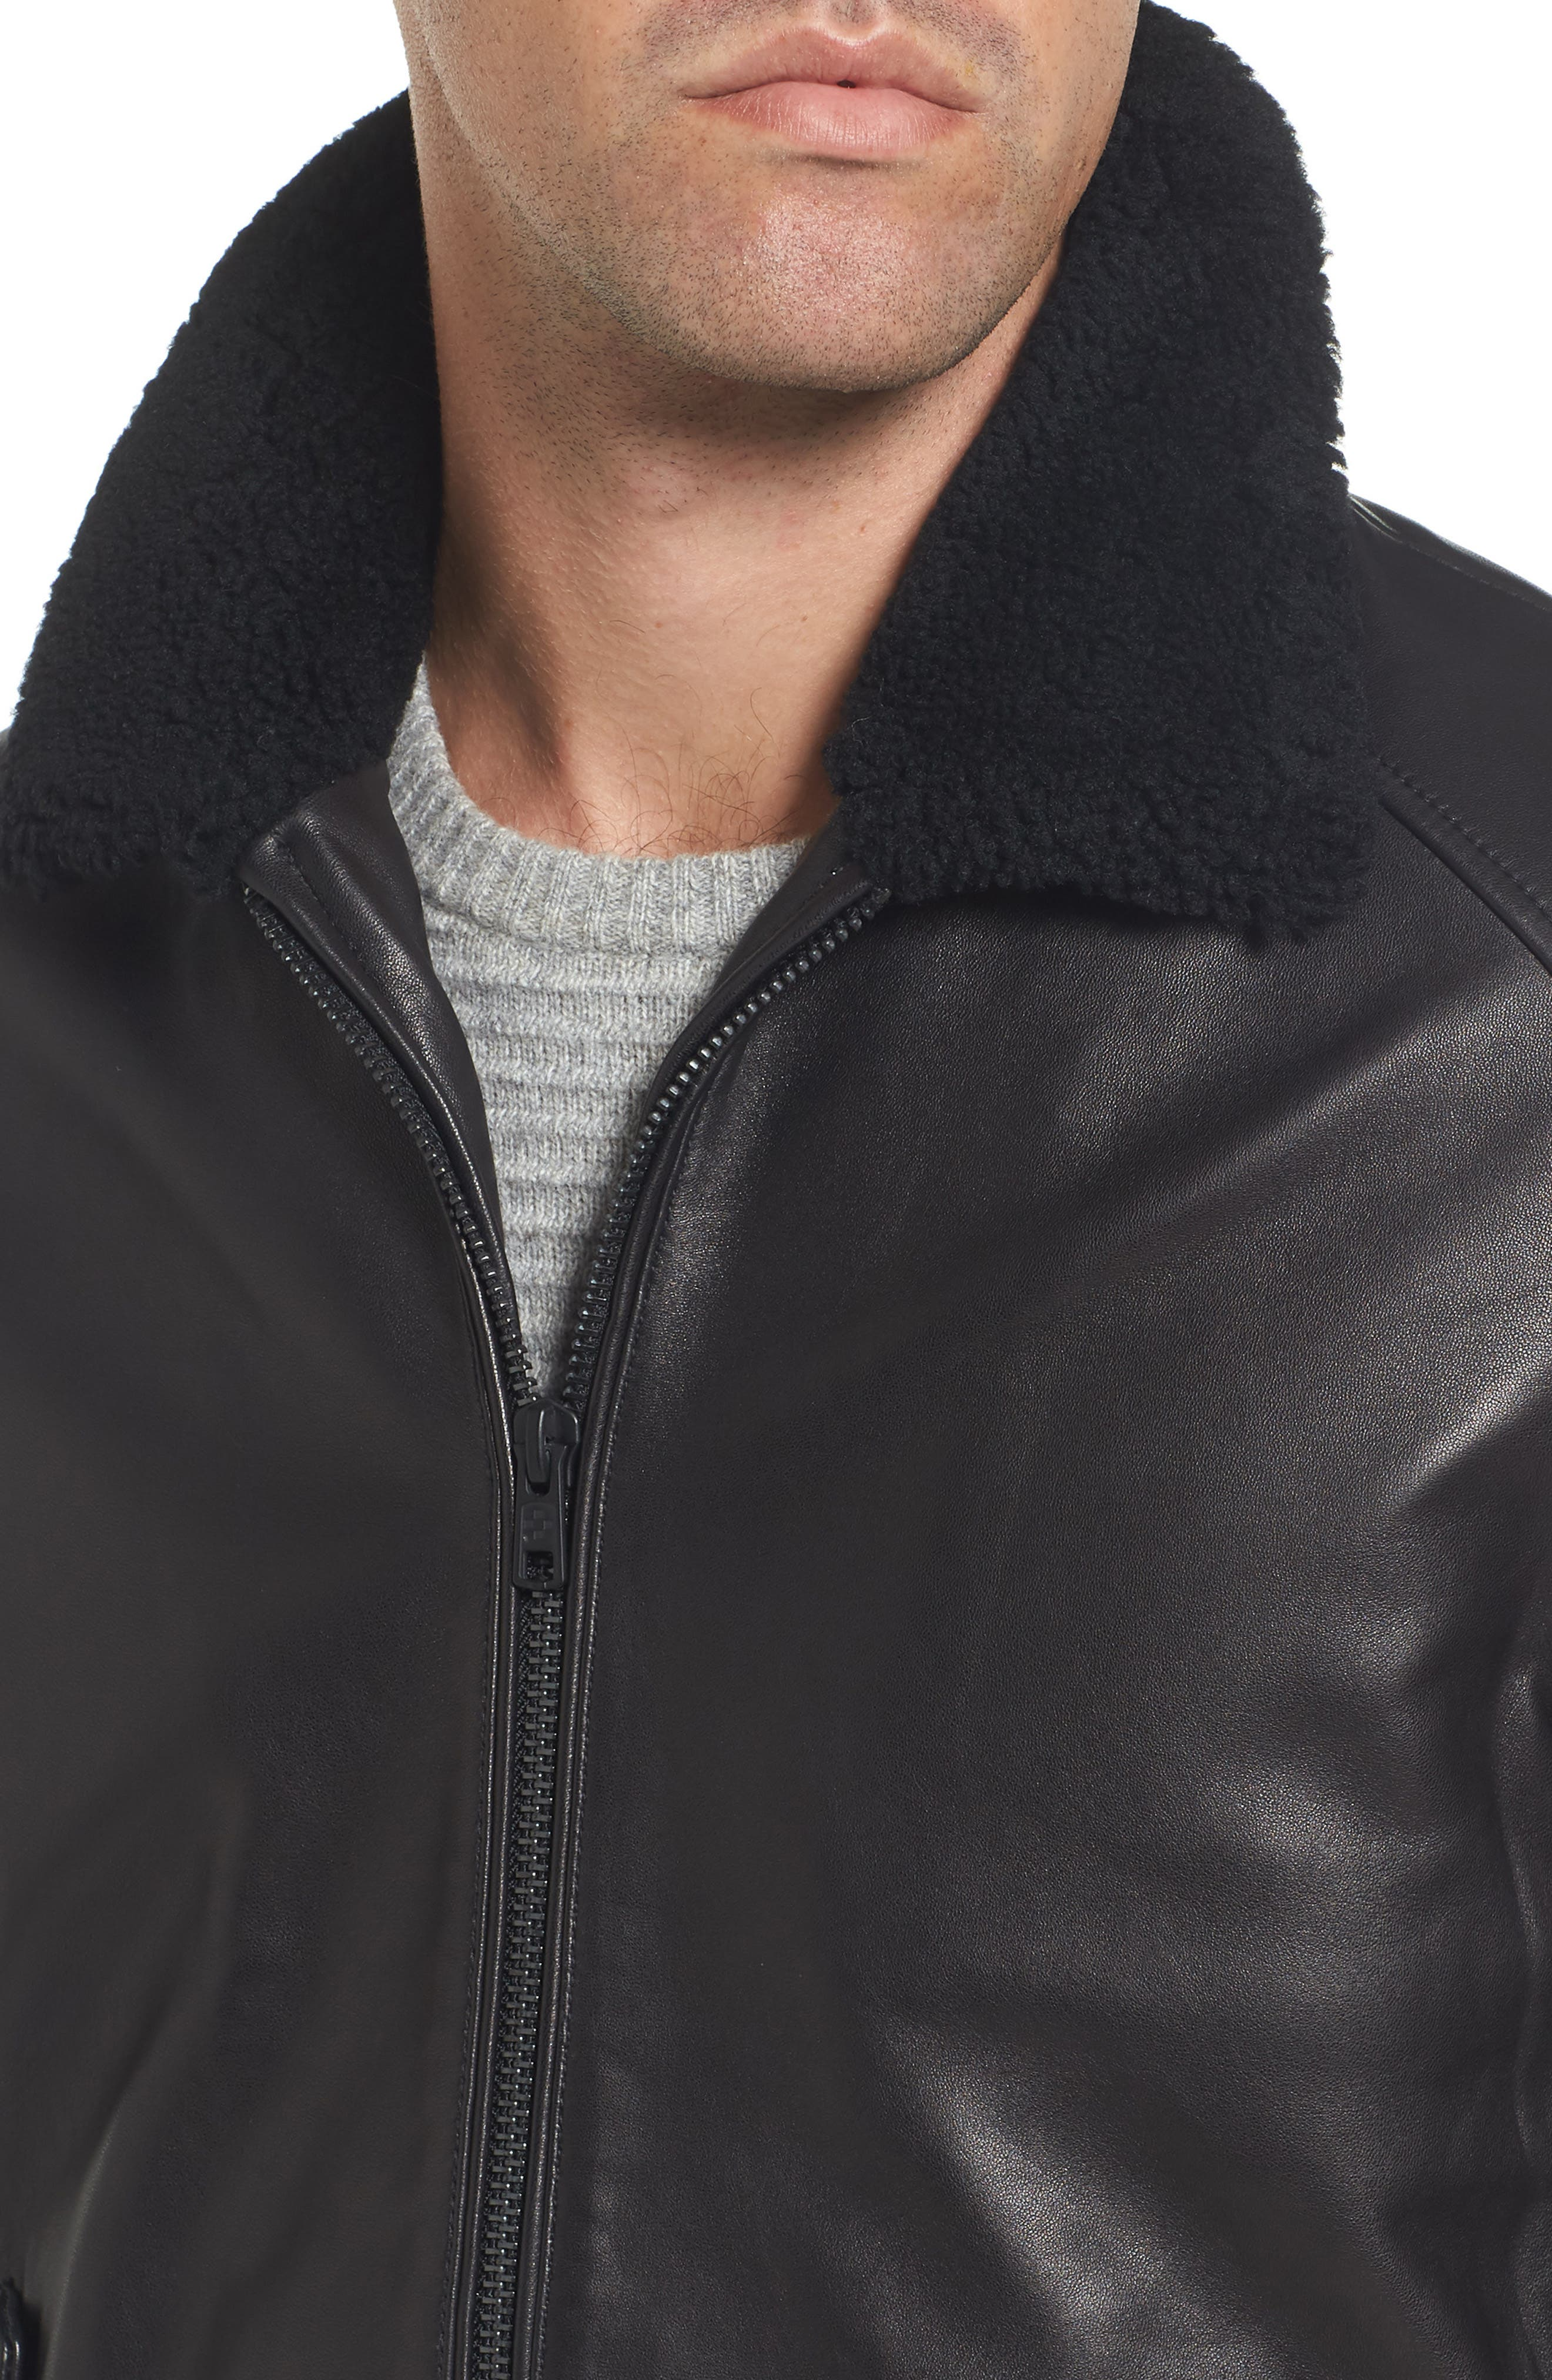 Genuine Shearling Leather Jacket,                             Alternate thumbnail 4, color,                             Black